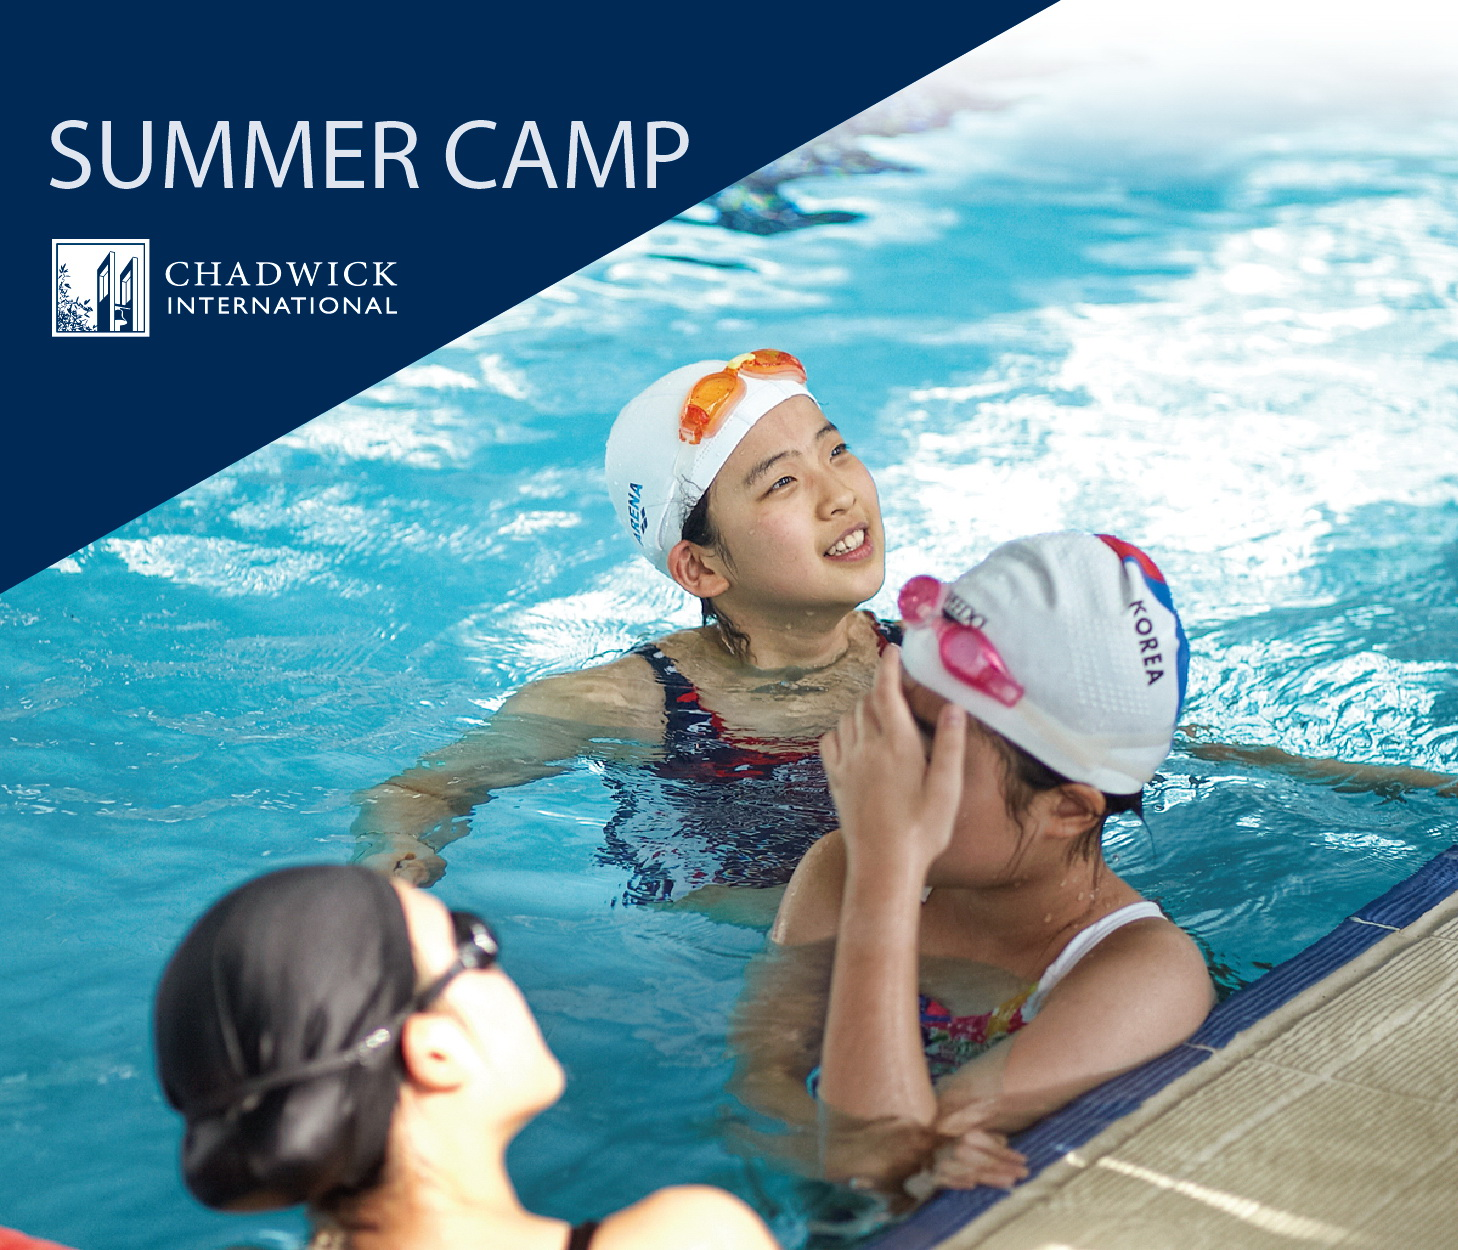 Chadwick International Summer Camp until 11 July 2014